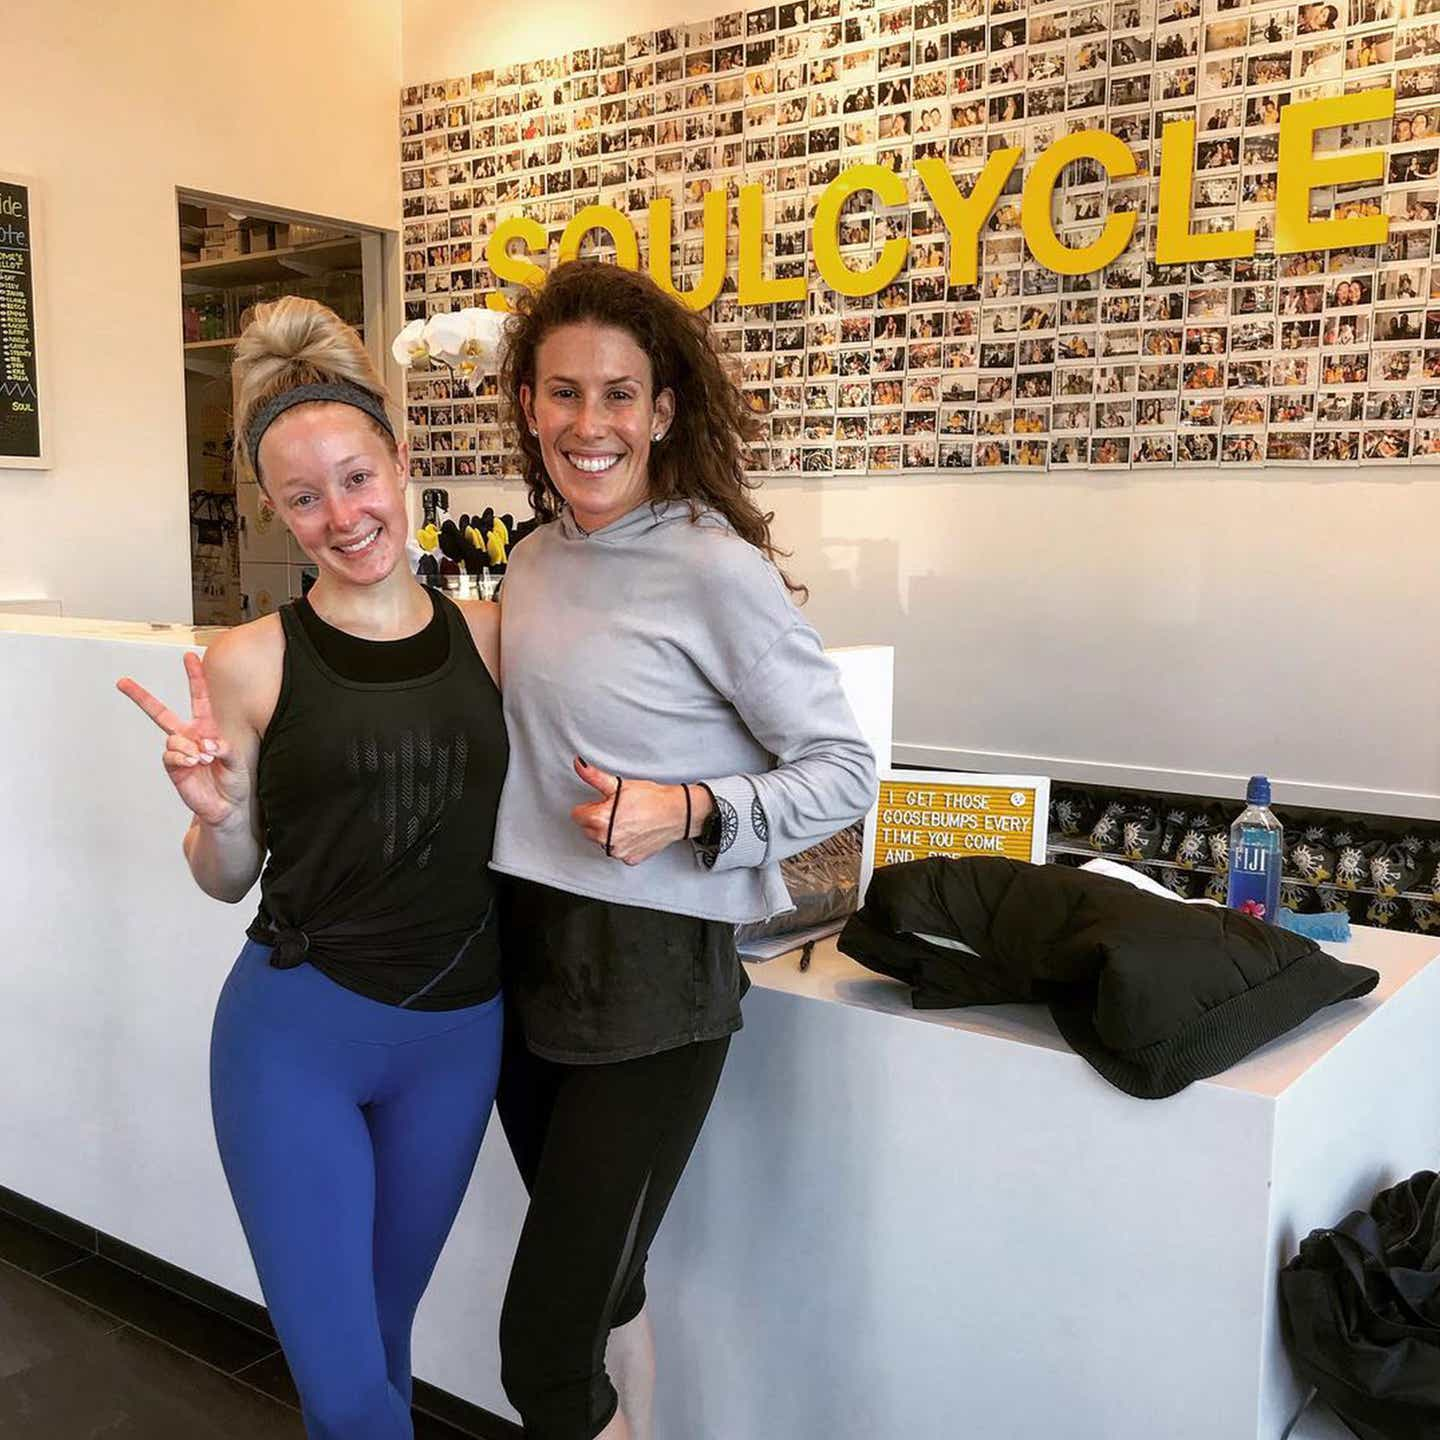 Co-author, Molly (left), wears a black tank and blue leggings while posing with a friend near a SoulCycle entrance.